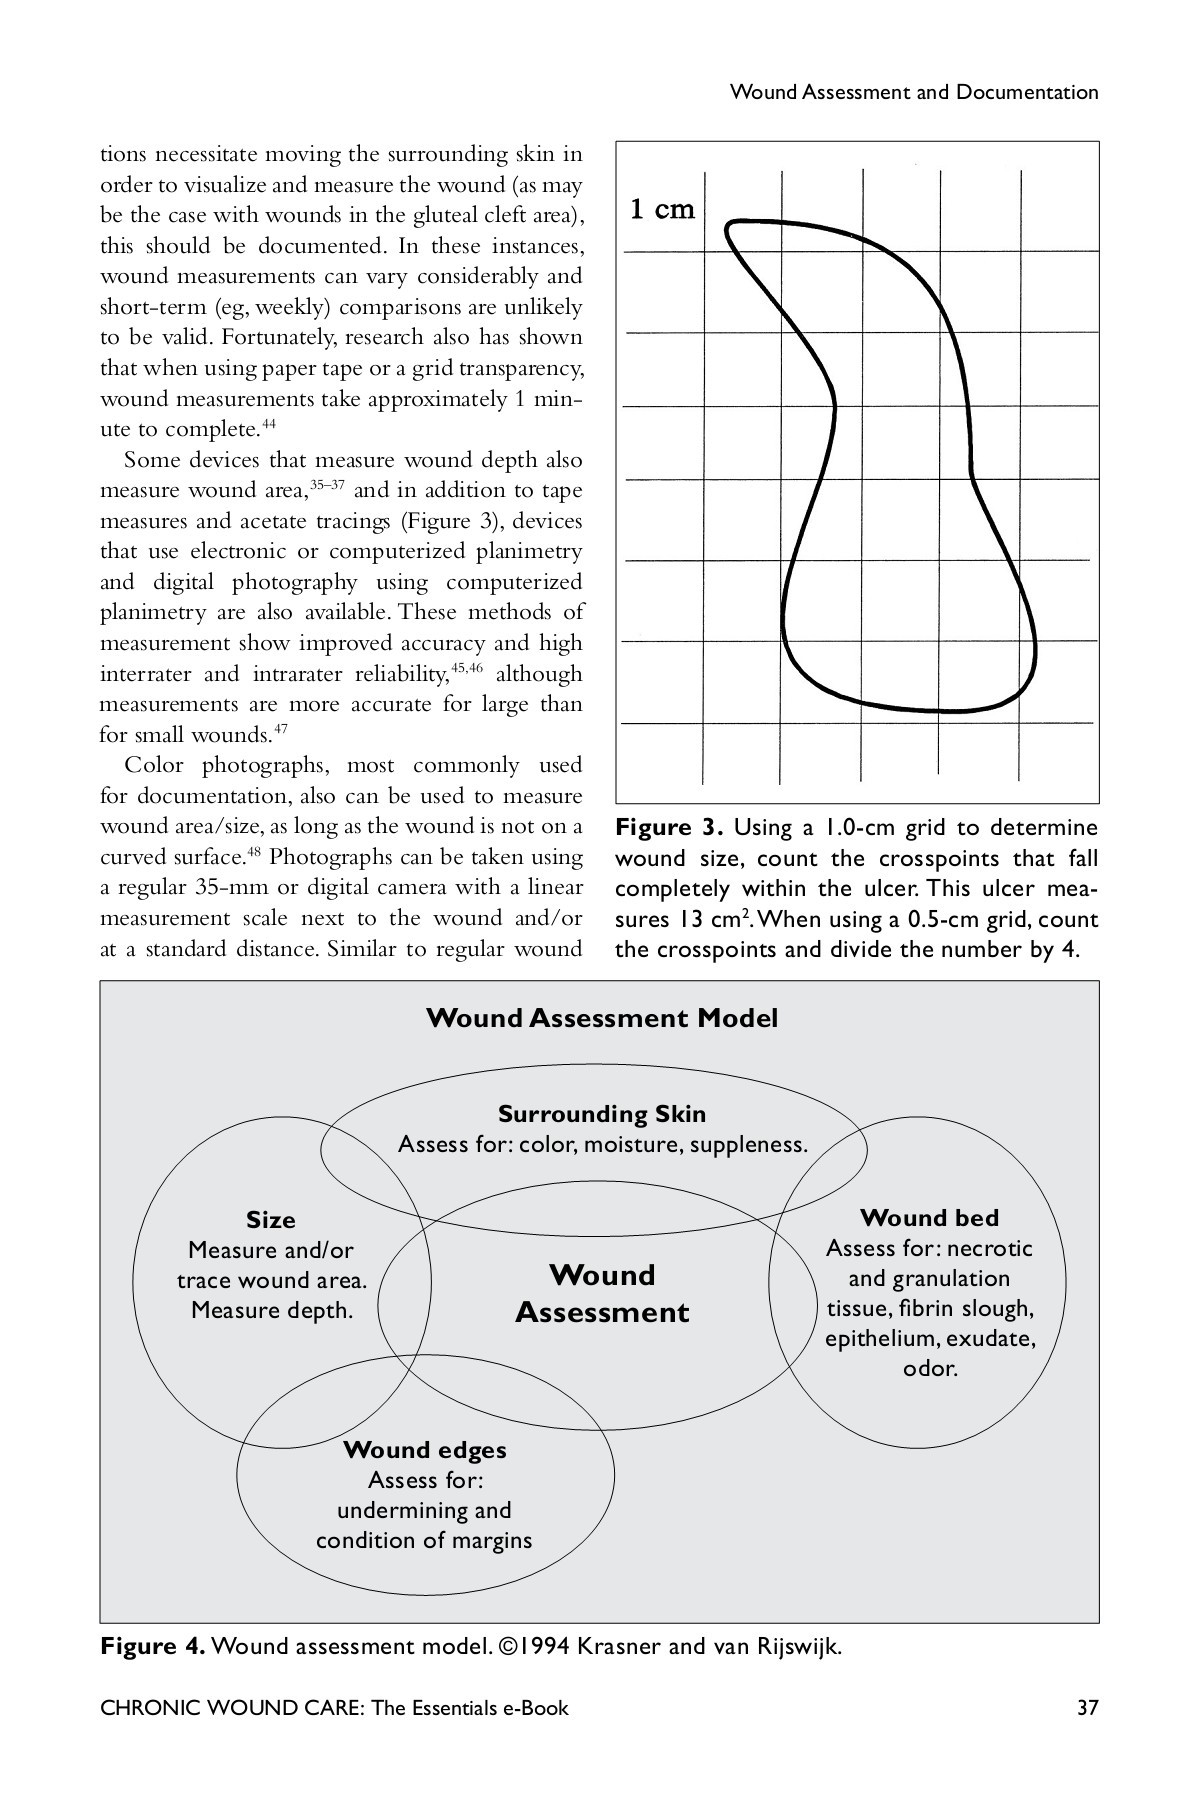 medium resolution of chronic wound care the essentials e book pages 51 100 text version fliphtml5